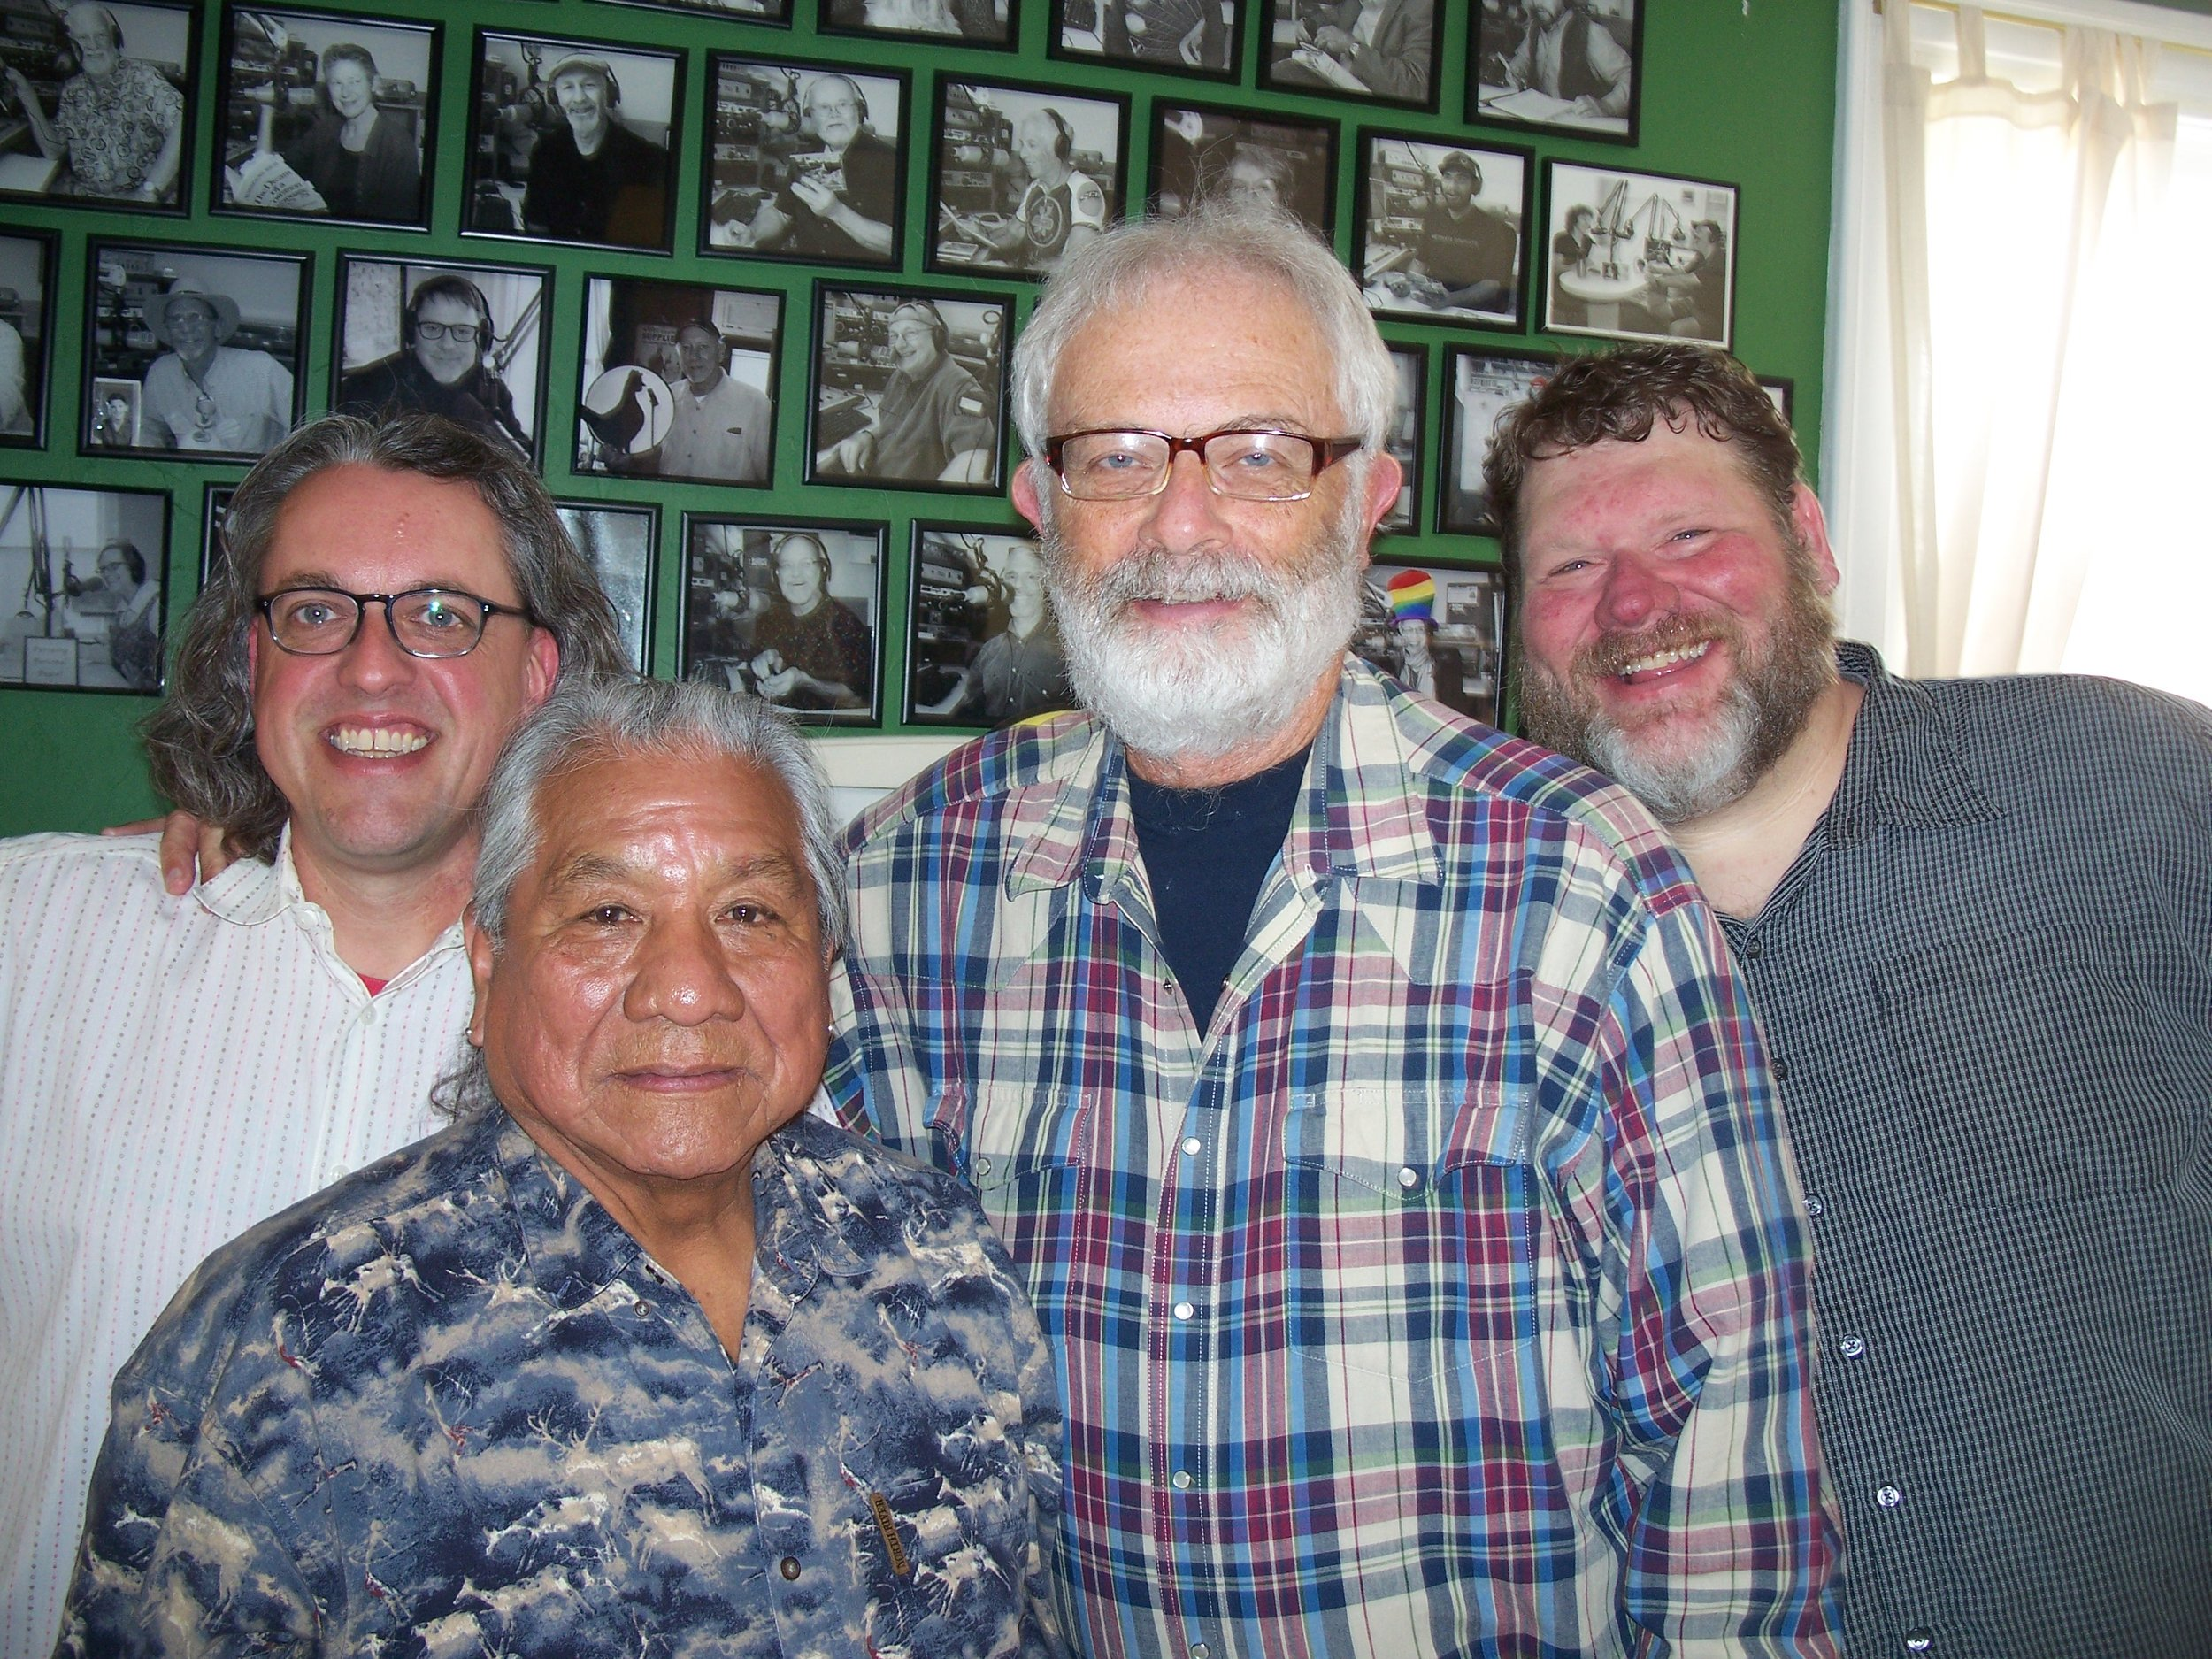 Pictured from left: Mark Monroe, Roland McCook, Wayne Iverson, and Jimmy Sellars.